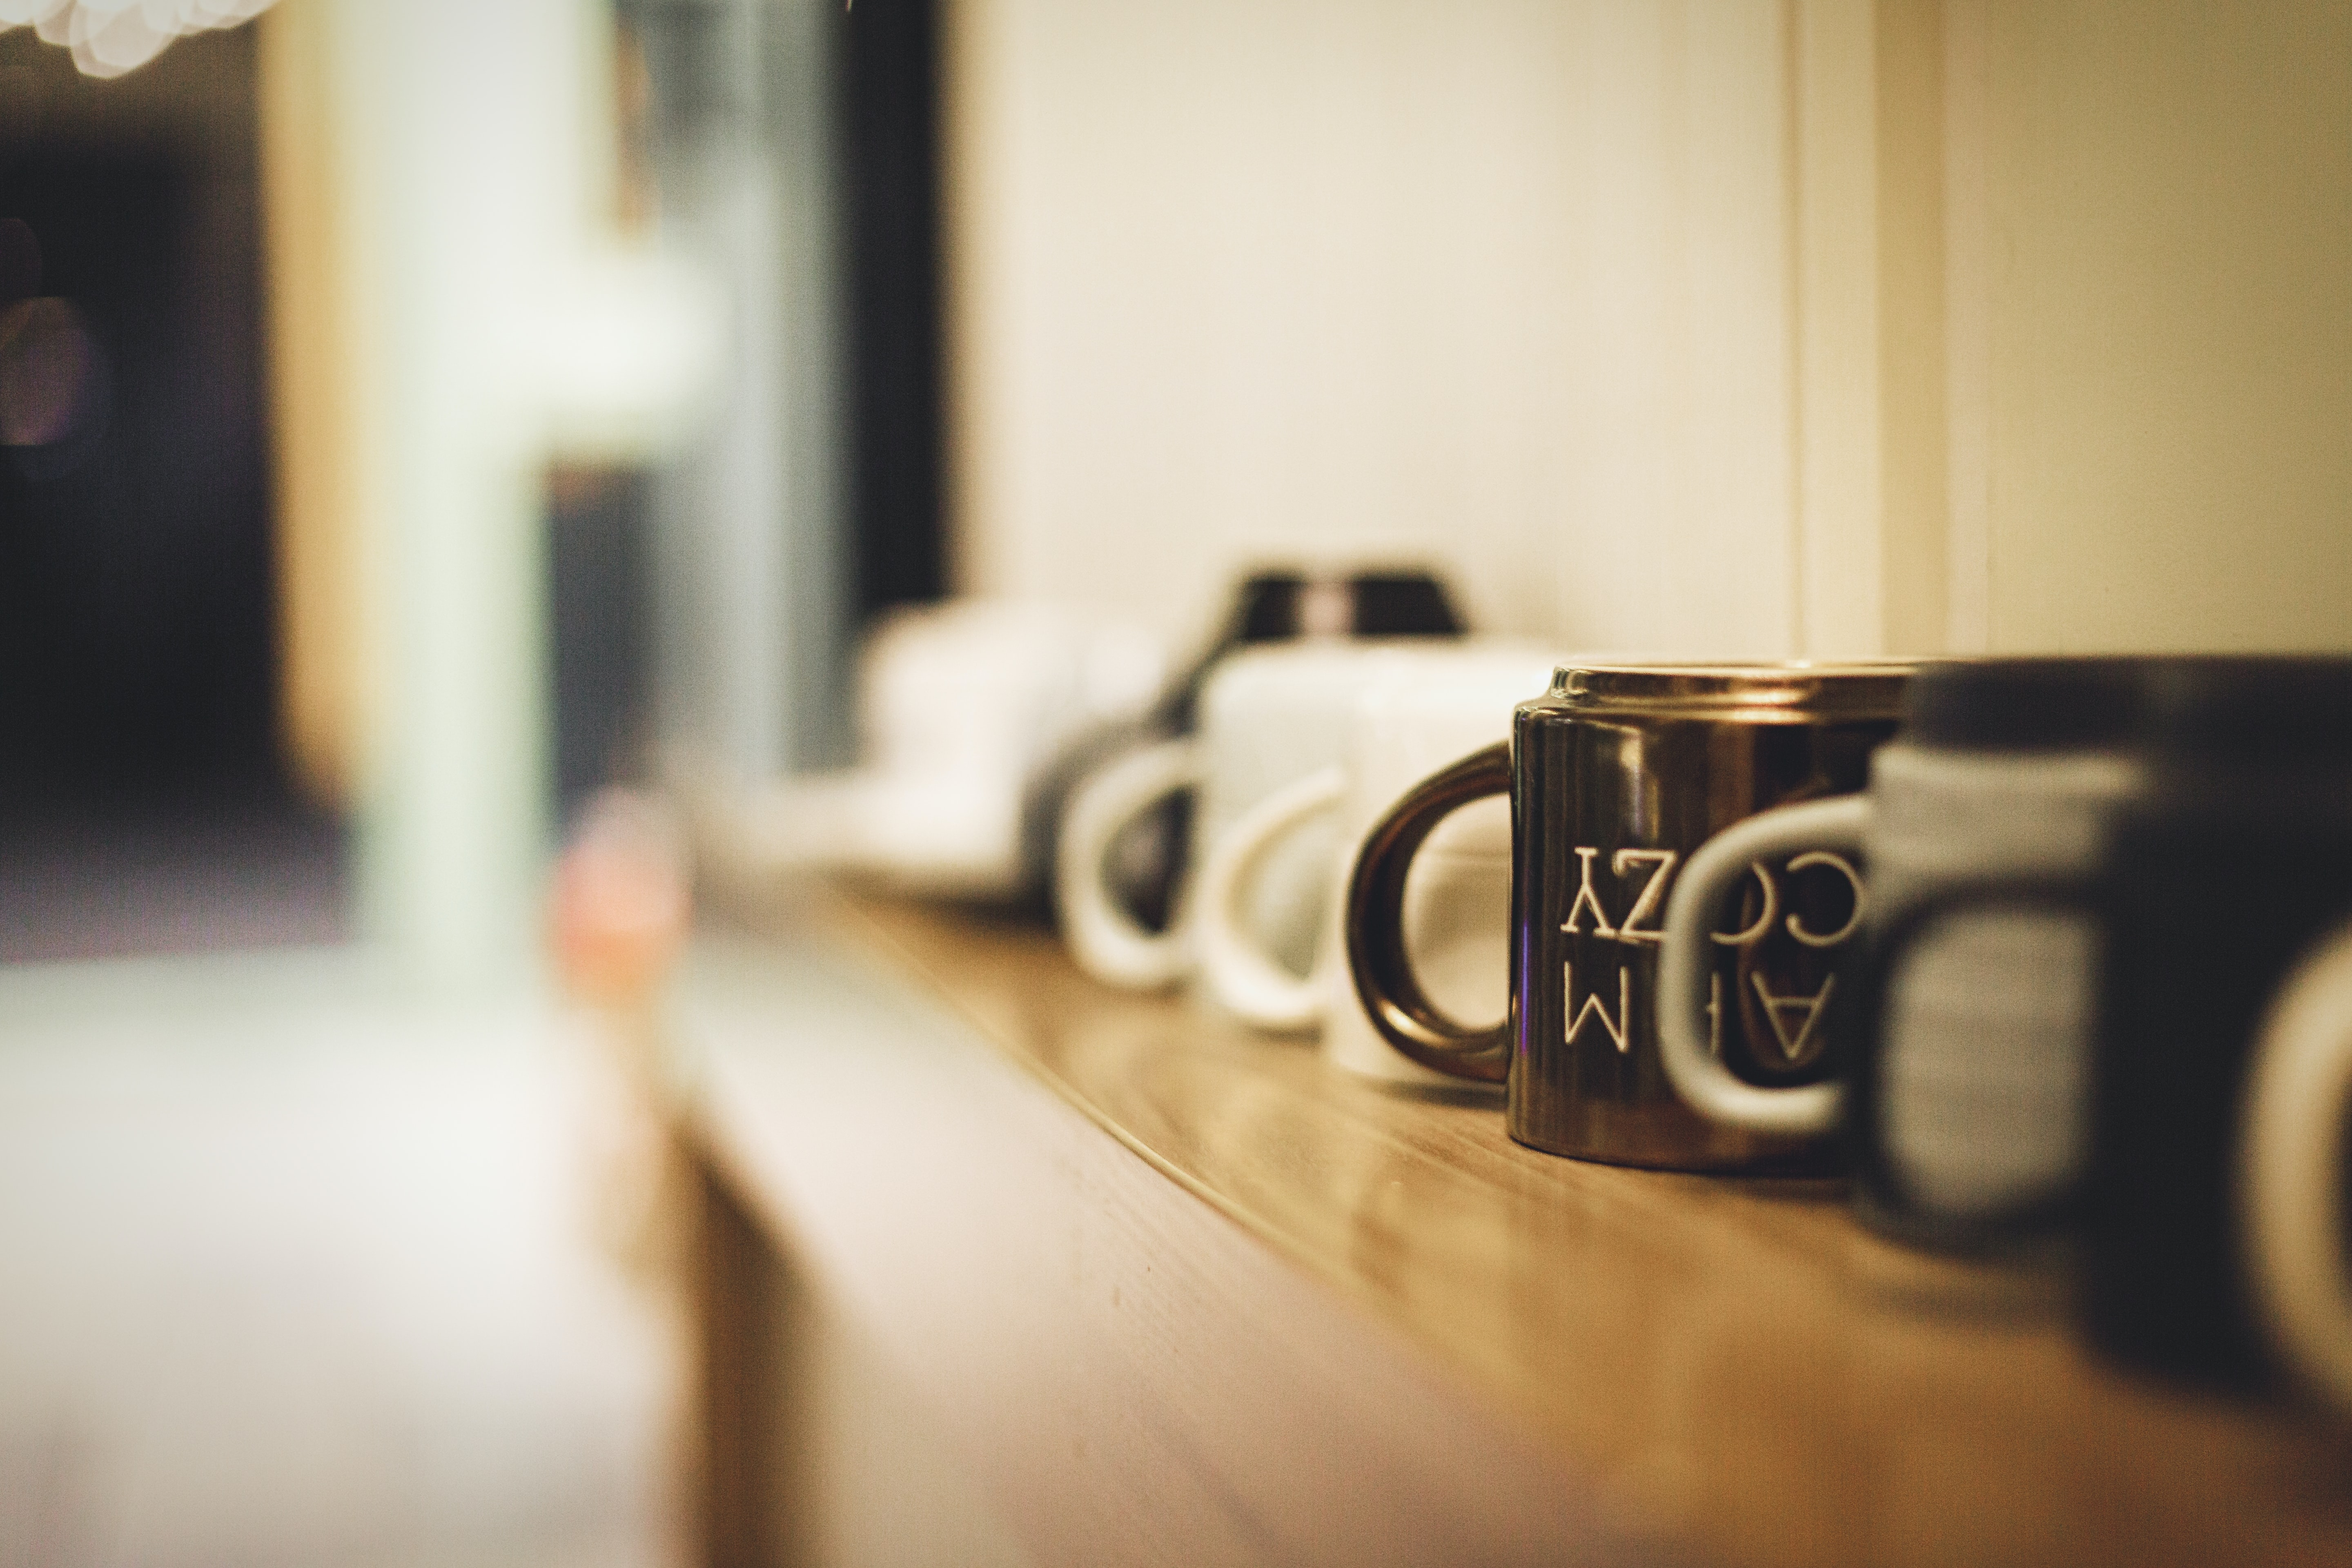 selective focus on white and brown mugs on wooden surface